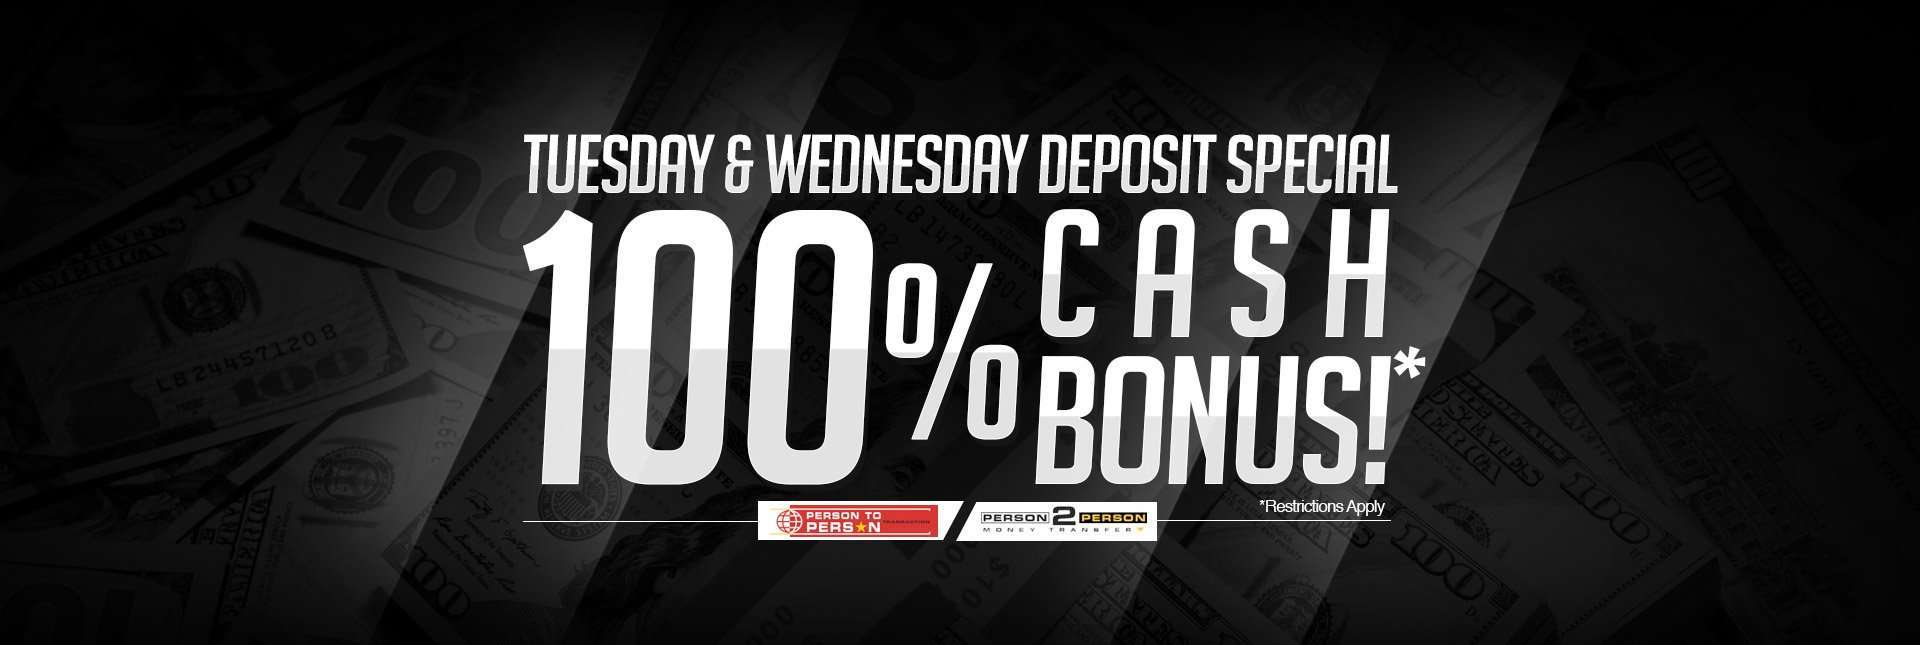 Tuesday & Wednesday Deposit Special: 100% Cash Bonus!